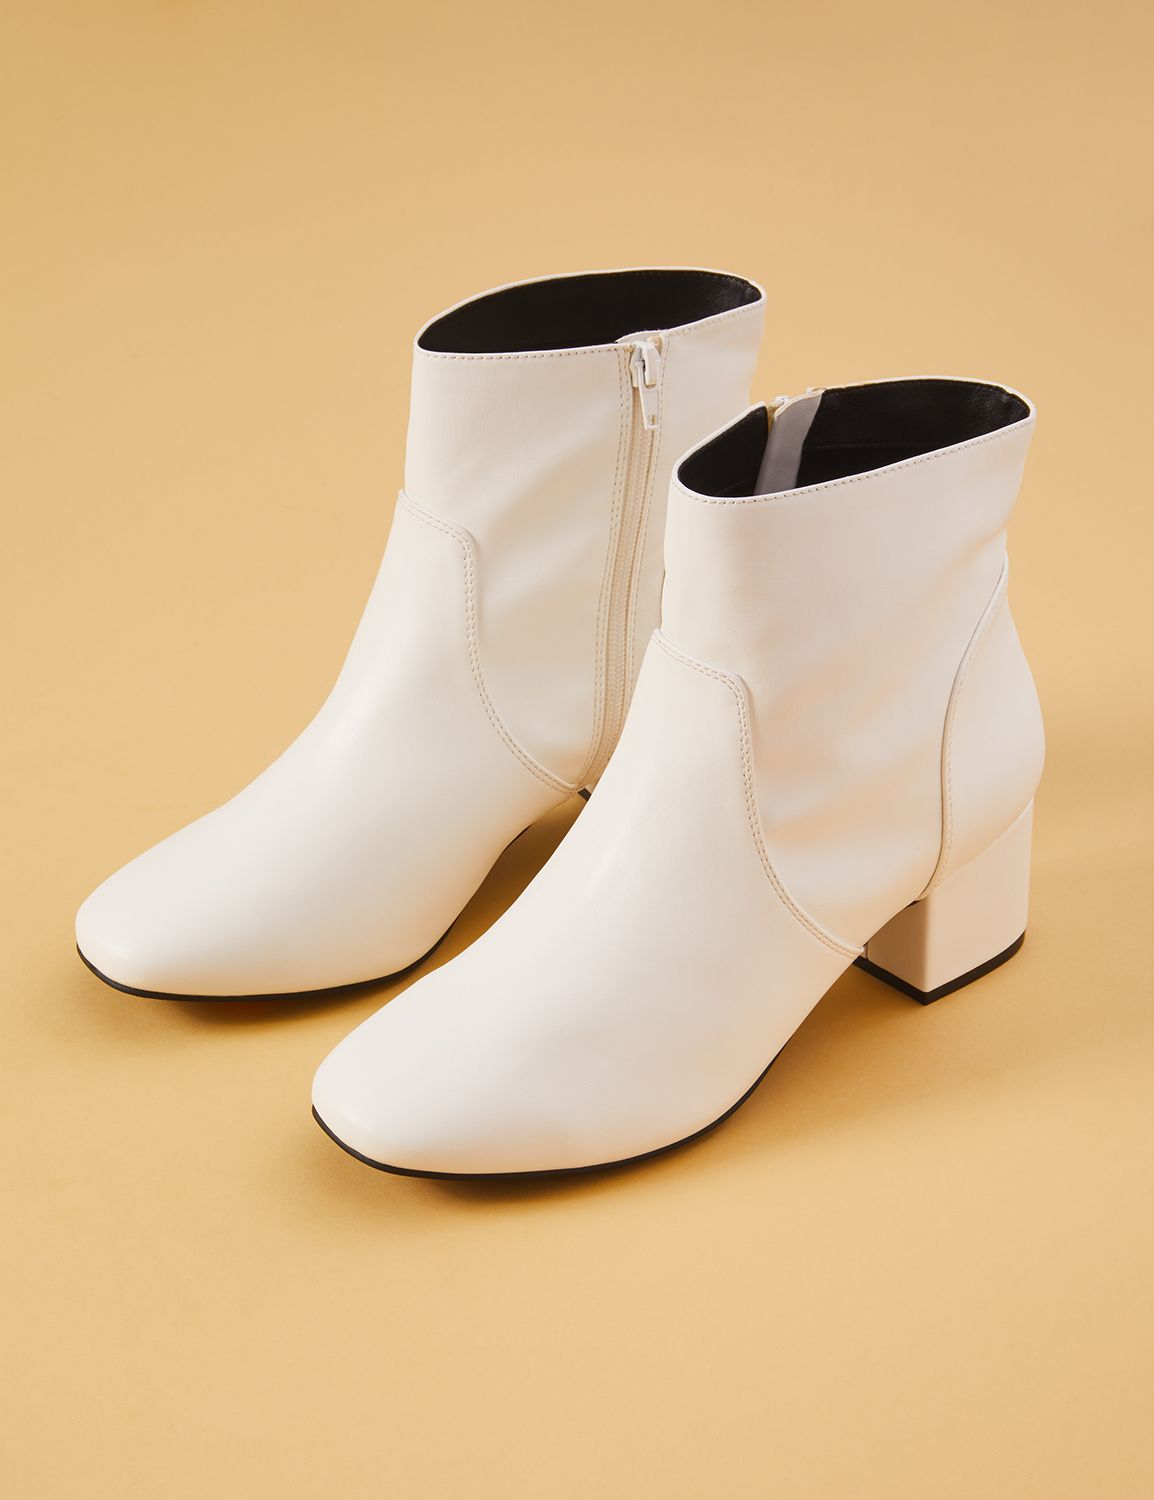 Vintage Boots- Buy Winter Retro Boots Lane Bryant Womens White Faux Leather Ankle Boot 12W White $62.99 AT vintagedancer.com